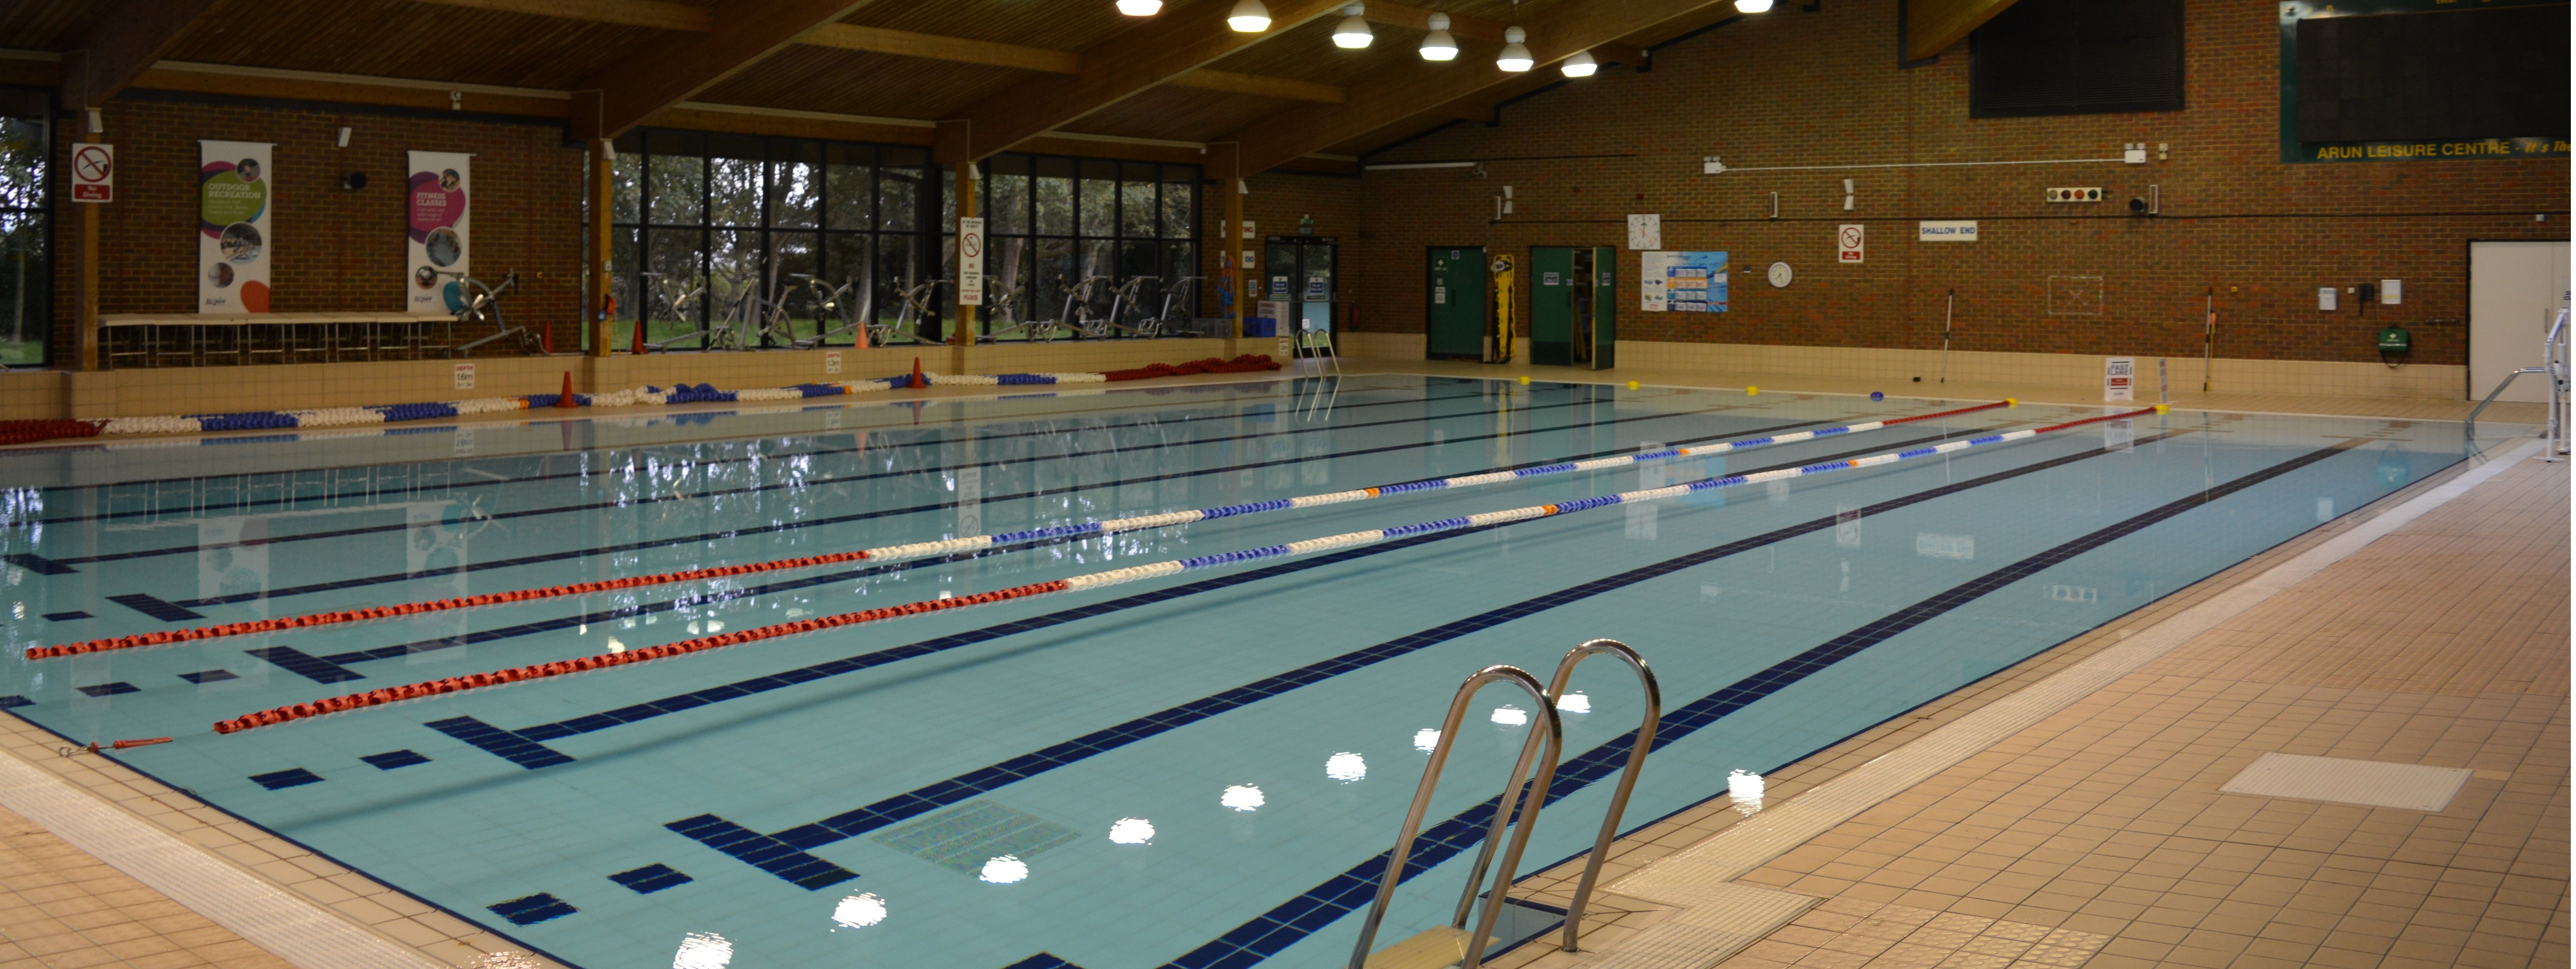 Empty Pool at Arun Leisure Centre